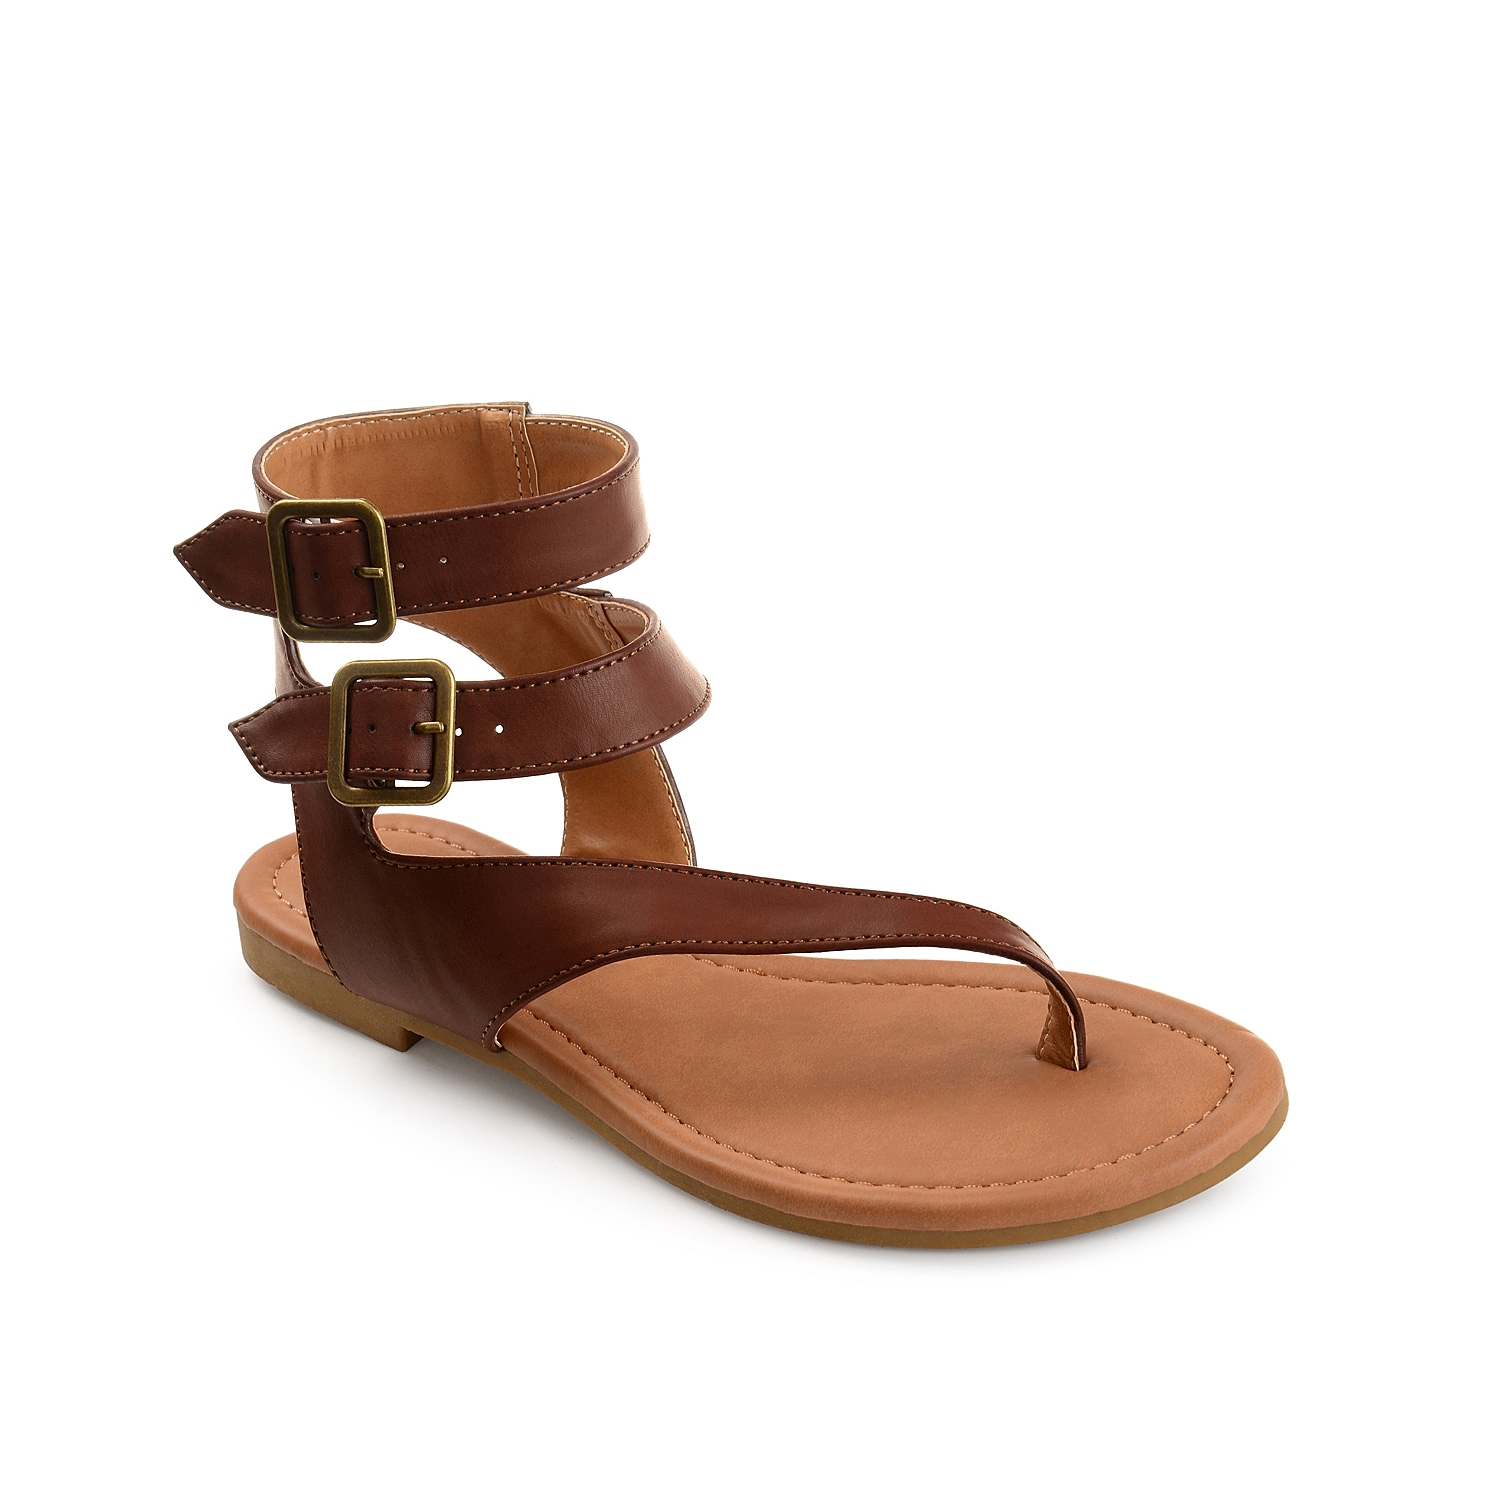 Buckle into chic style with the Kyle sandal from Journee Collection. A double ankle strap and asymmetrical styling will make these flat sandals your new favorite!